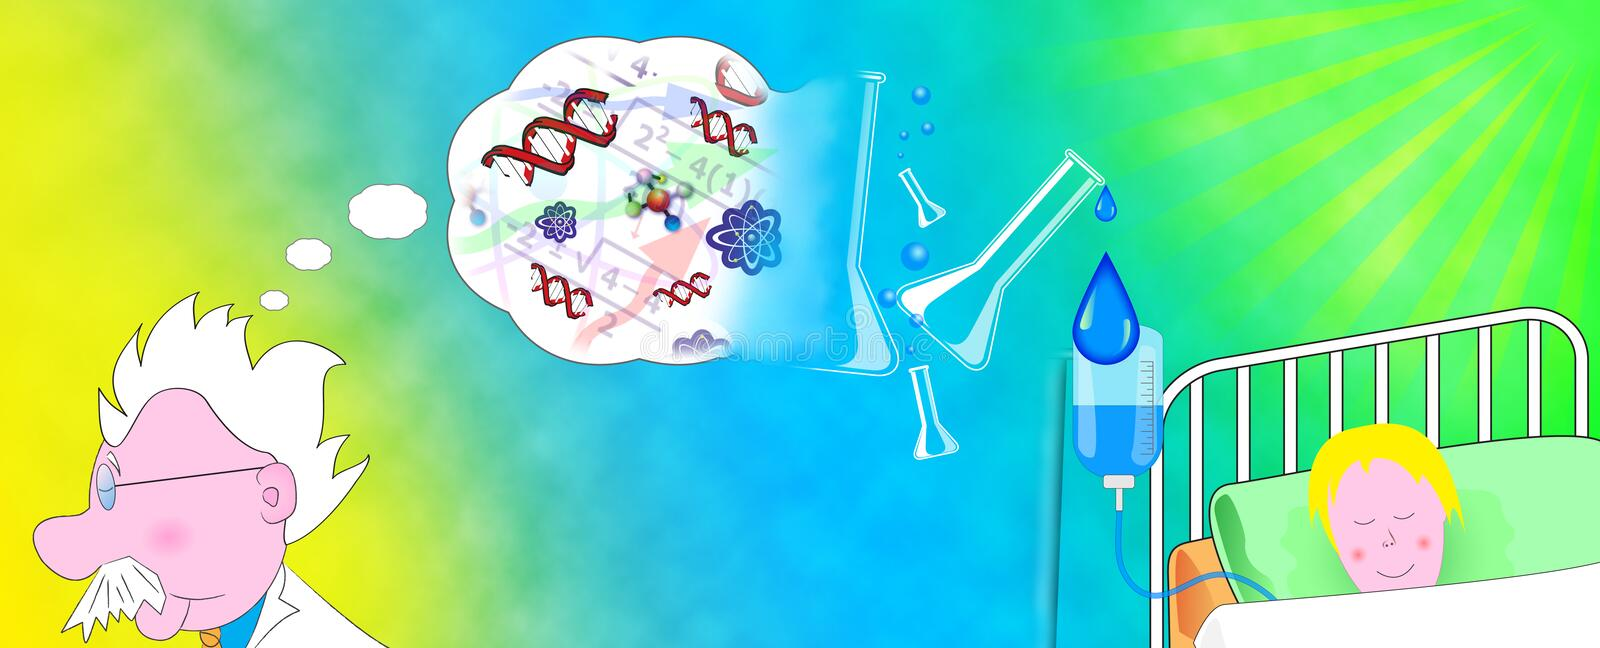 Download Drops of hope stock illustration. Image of science, sick - 4290000